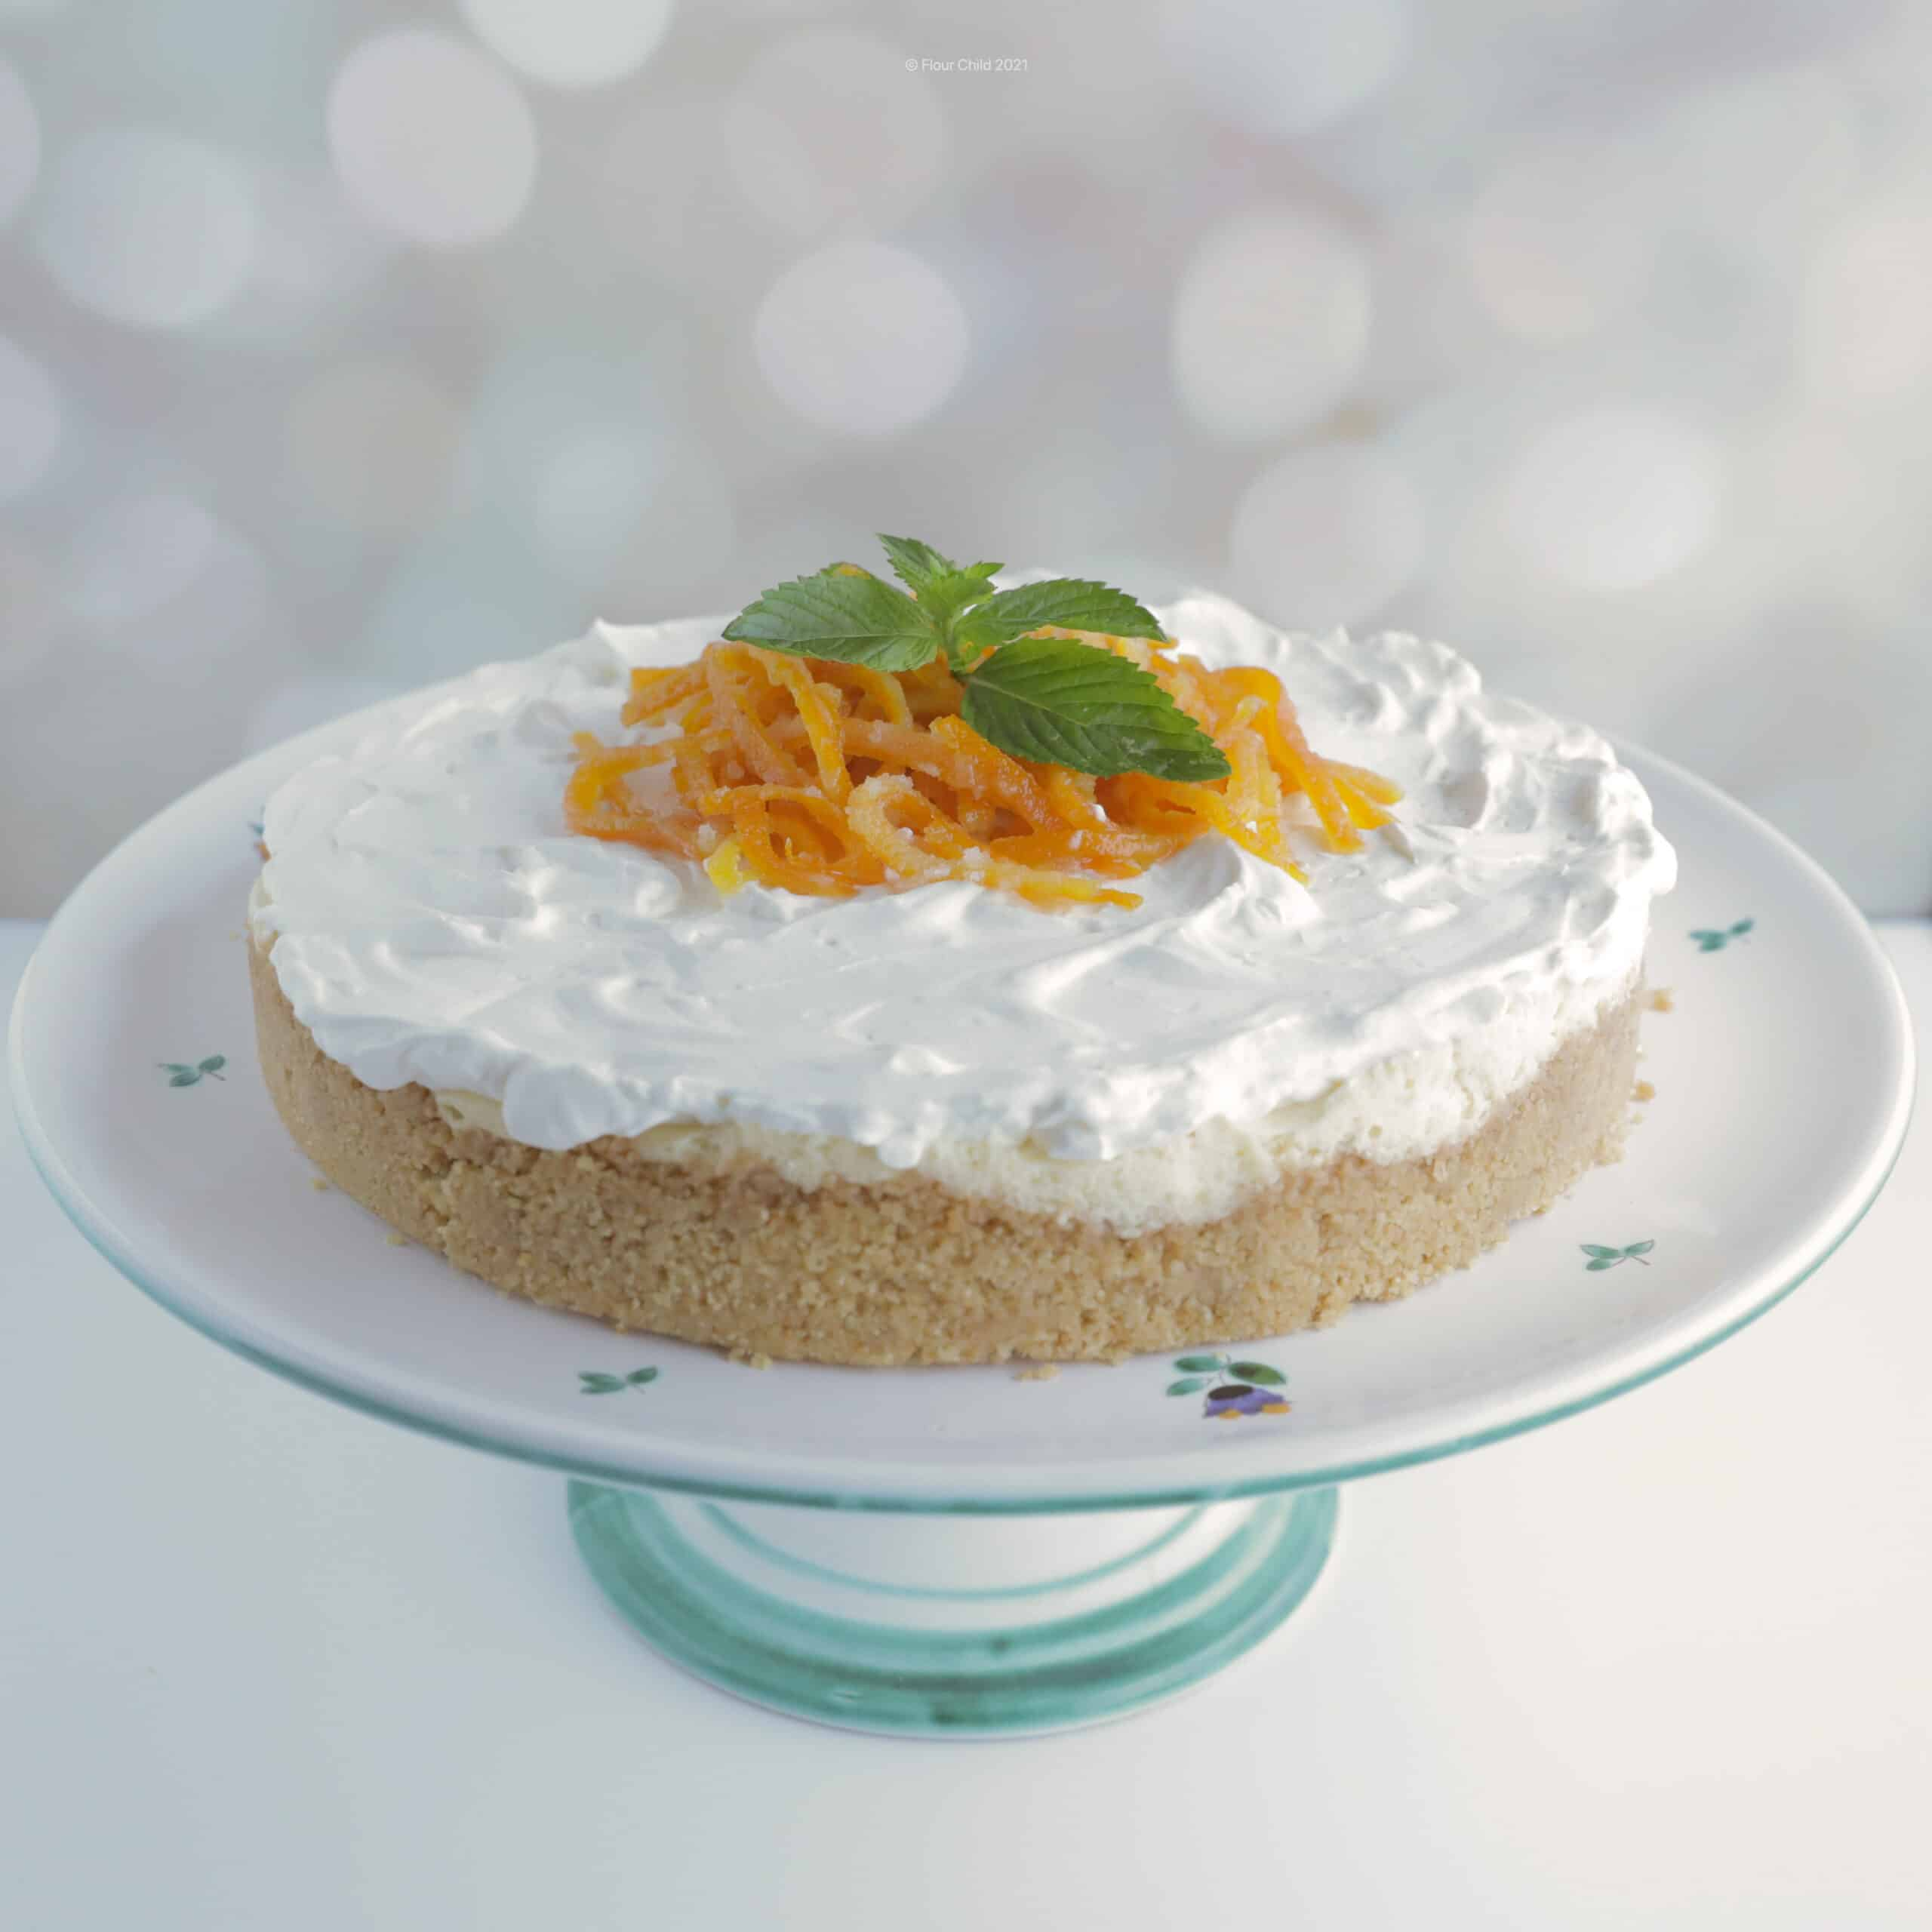 Orange creamsicle cheesecake on a cake pedestal with candied orange peel and mint leaves garnishing the top in the center.